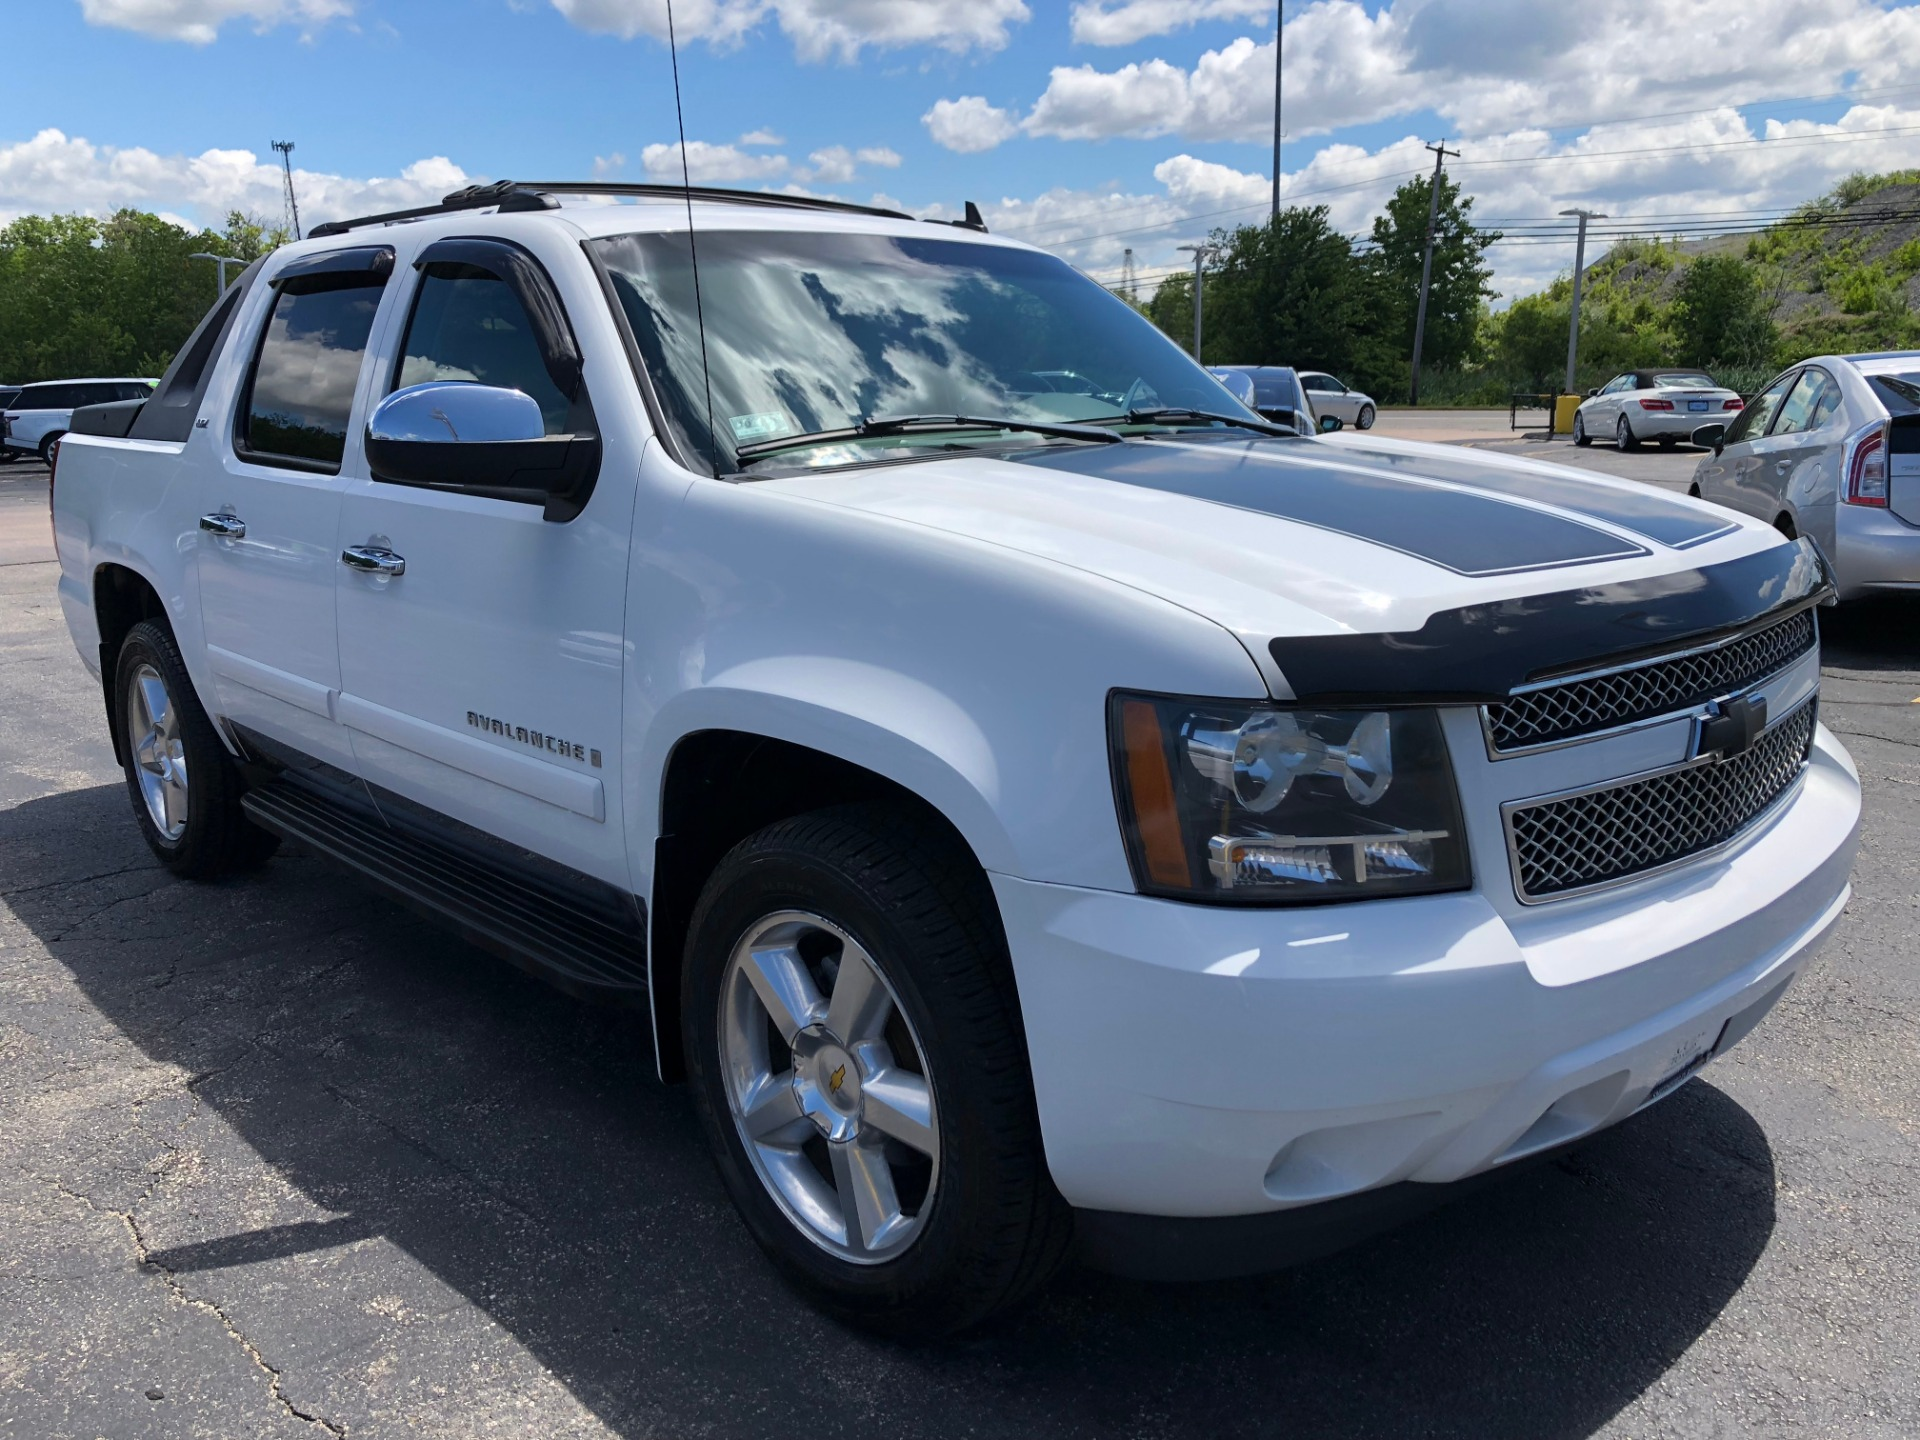 Avalanche 2008 chevrolet avalanche : 2008 CHEVROLET AVALANCHE 1500 Stock # 1522 for sale near ...